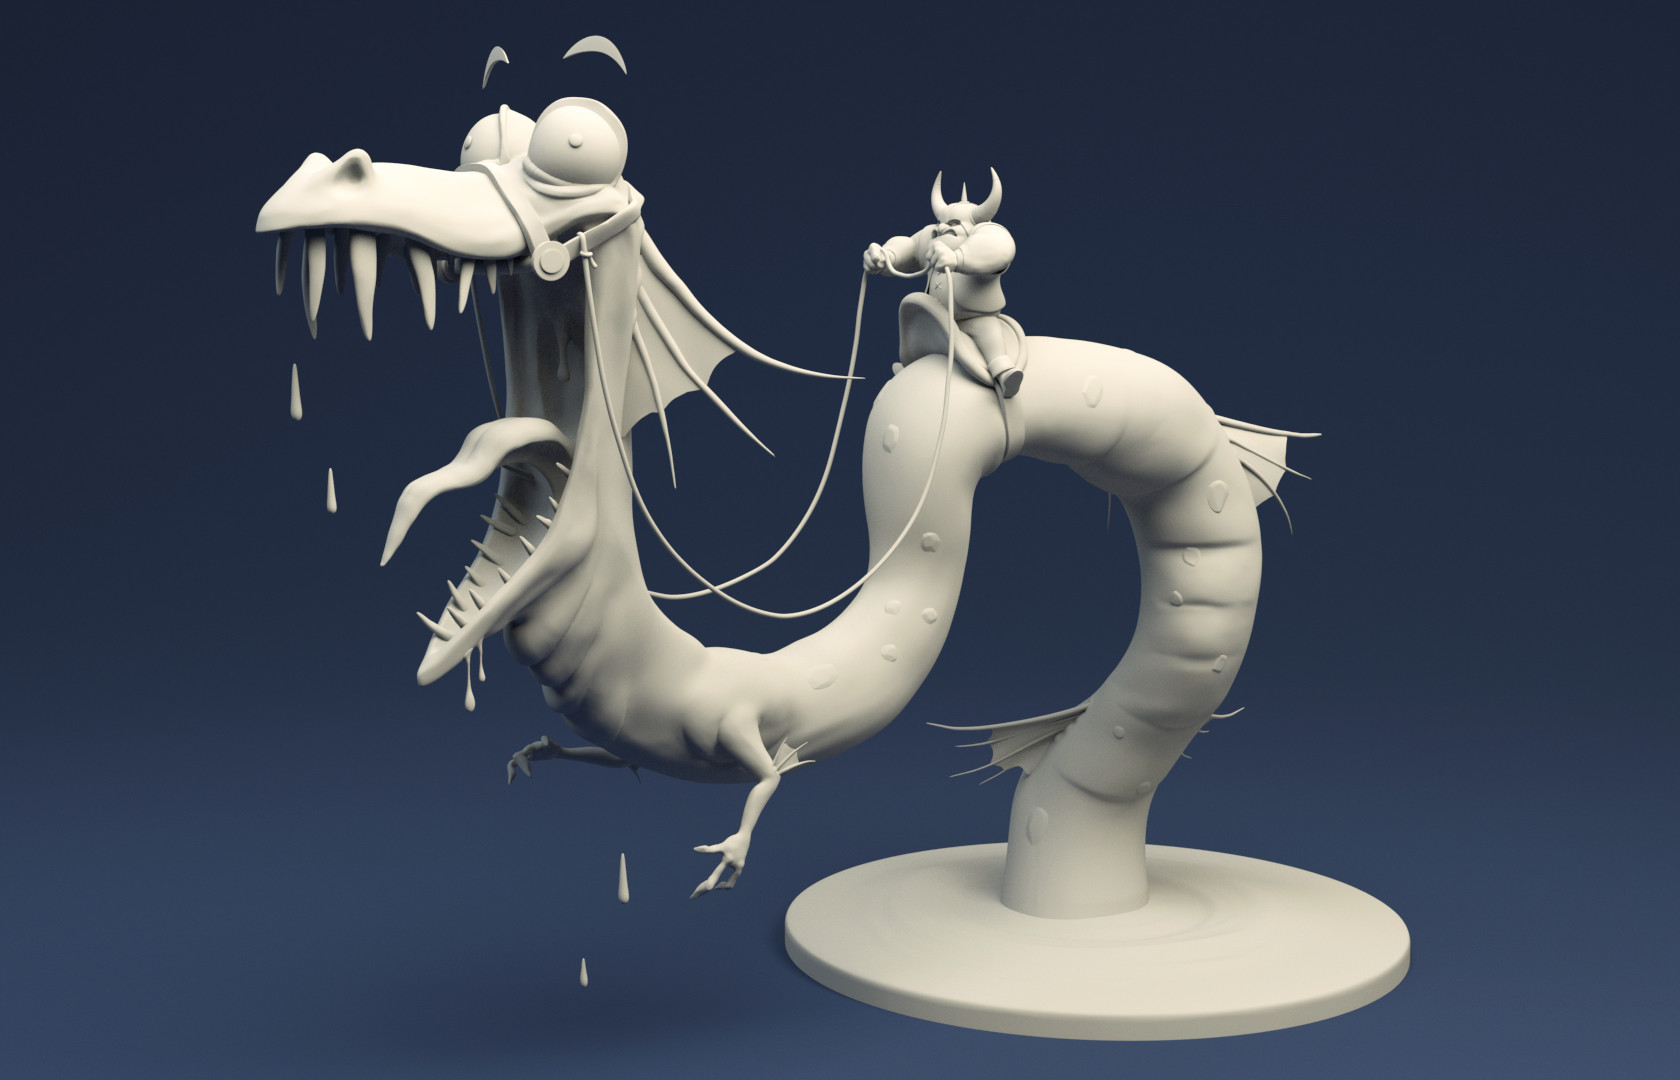 Javier diaz ridingseamonster render 01